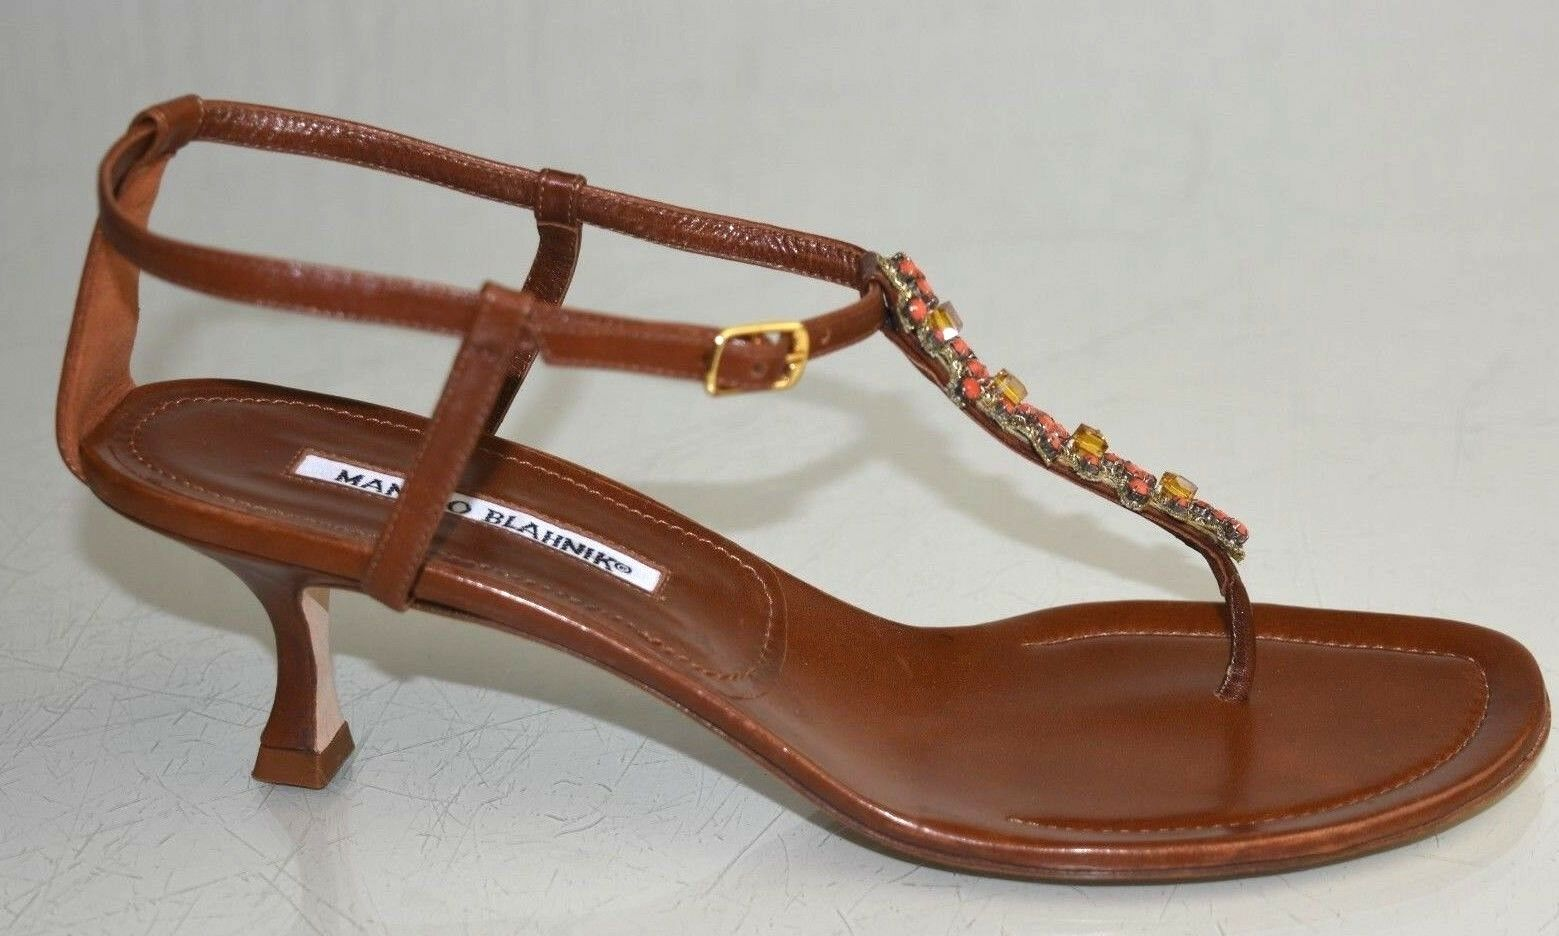 1095 New Manolo Blahnik Leather Brown JEWELED Coral Kitten Kitten Kitten Heel Sandals shoes 40 3f6041